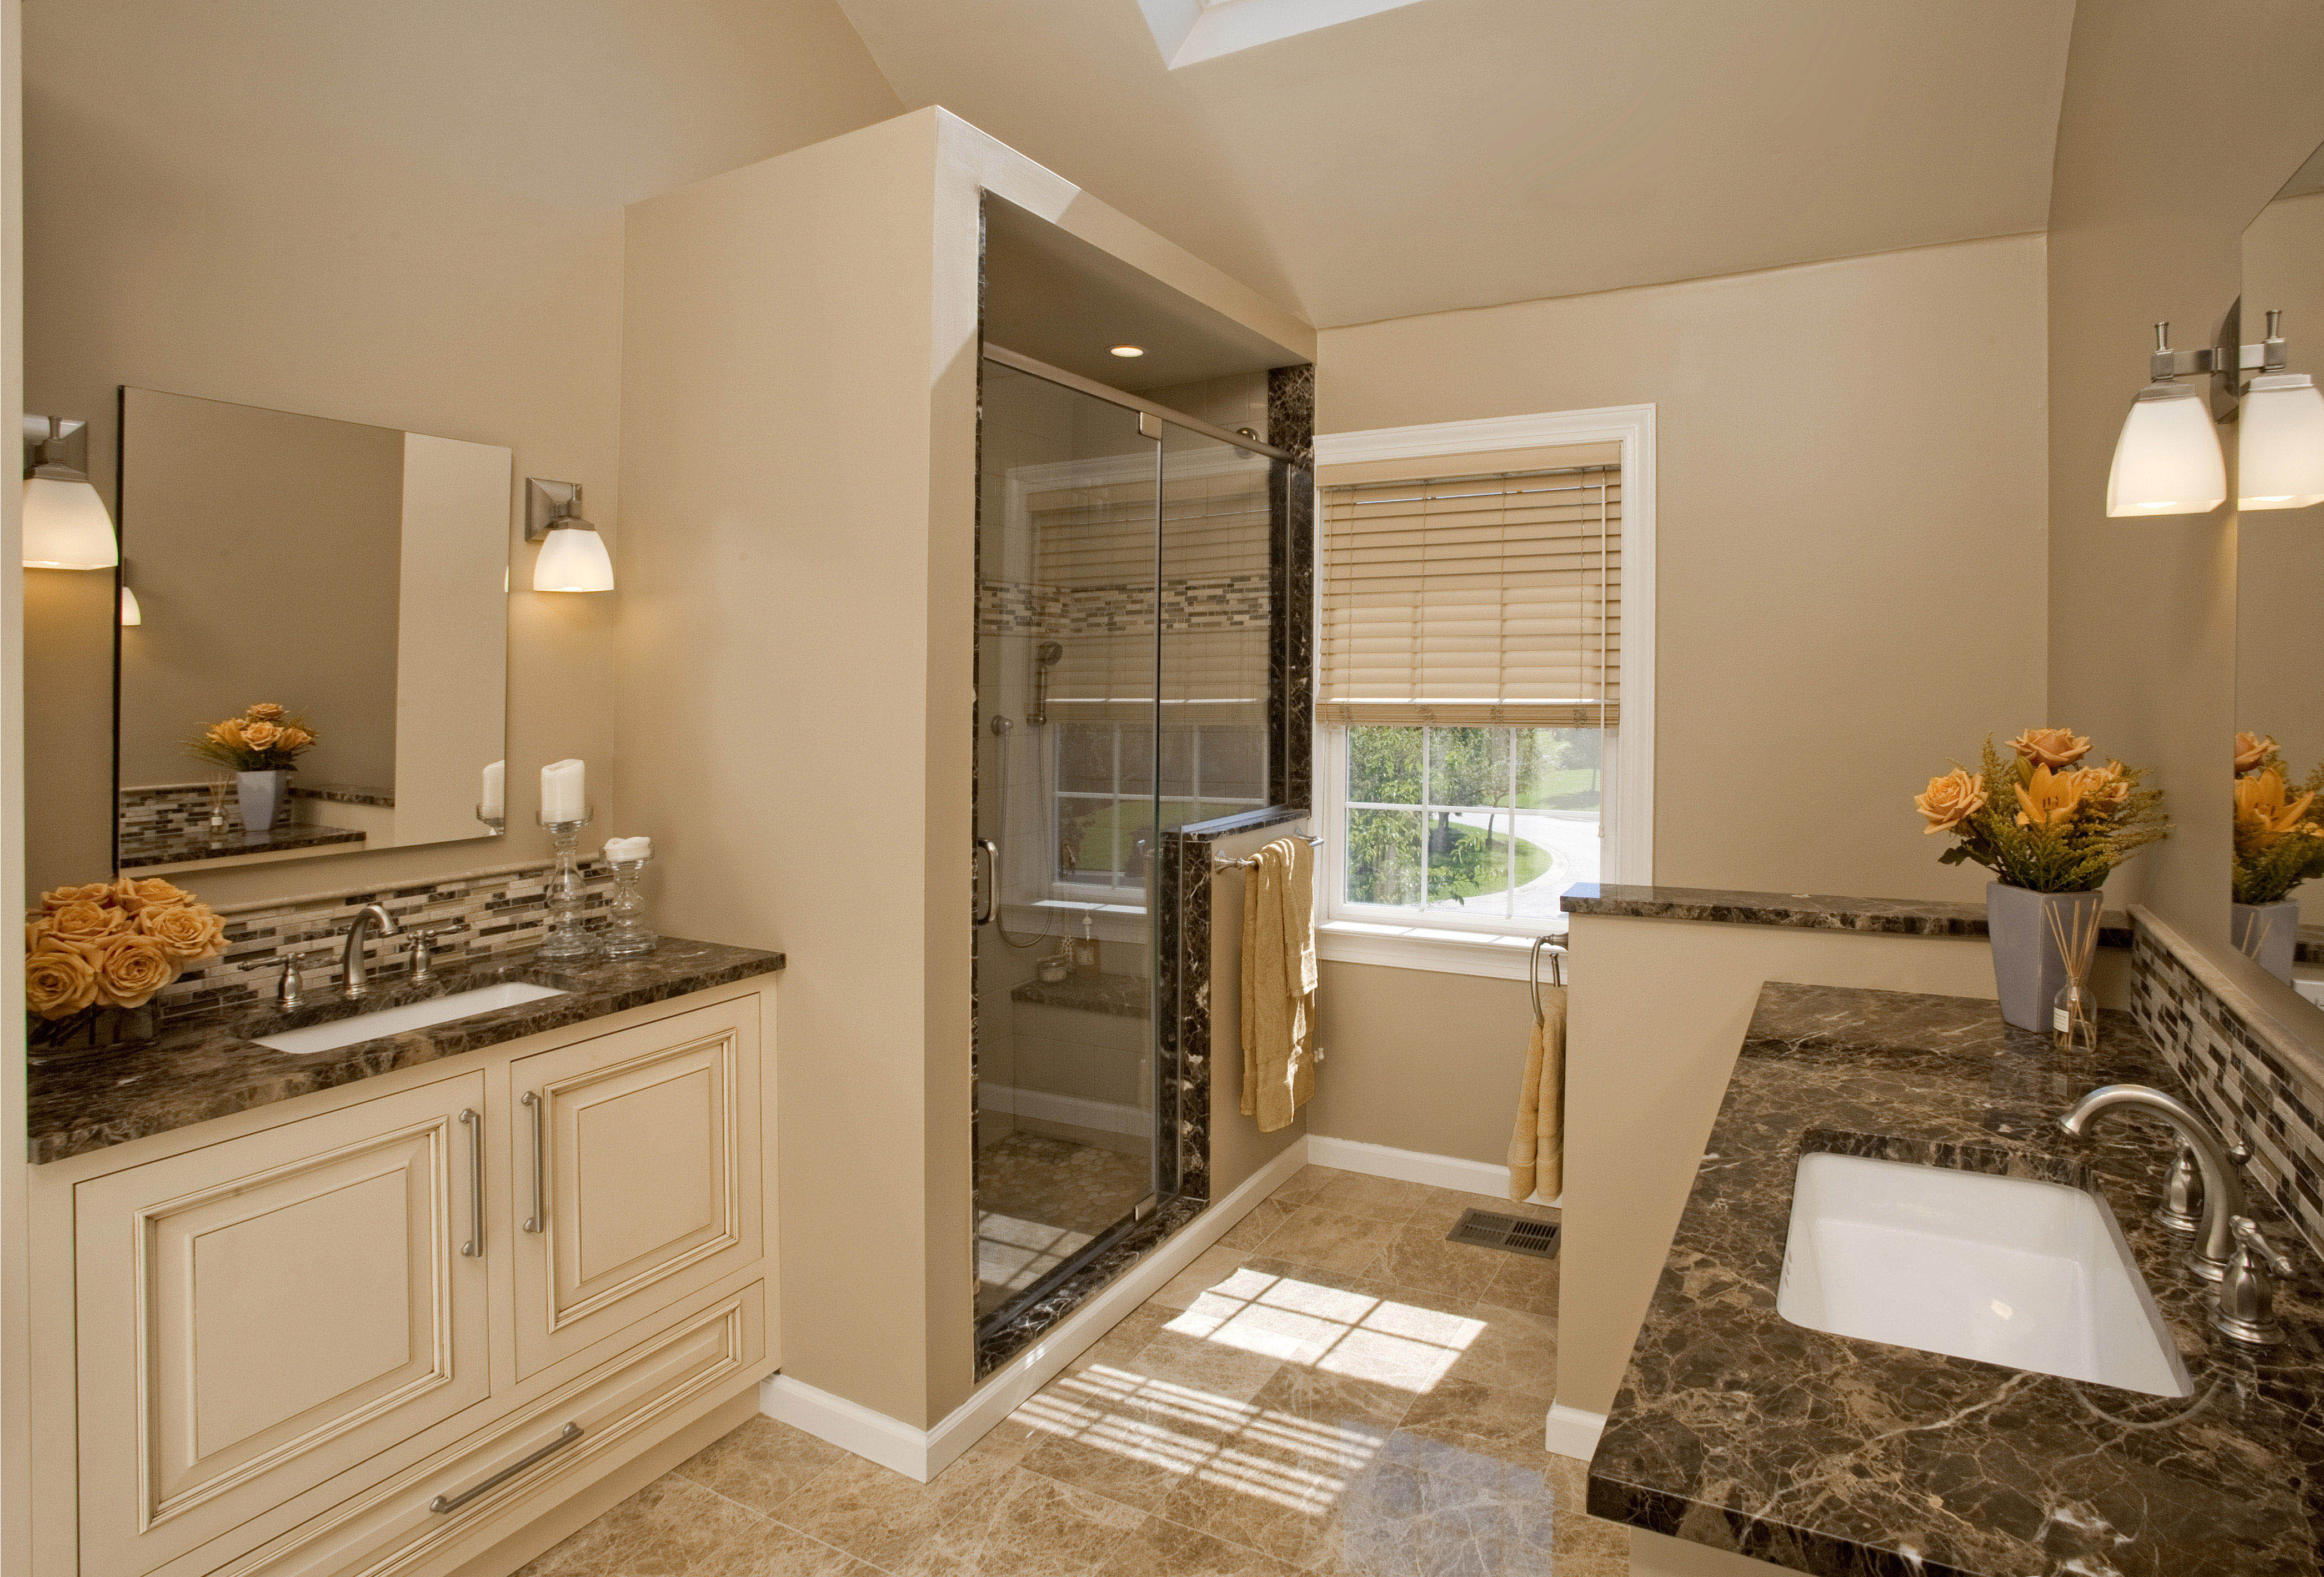 Image of: Small Bathroom Remodel On A Budget